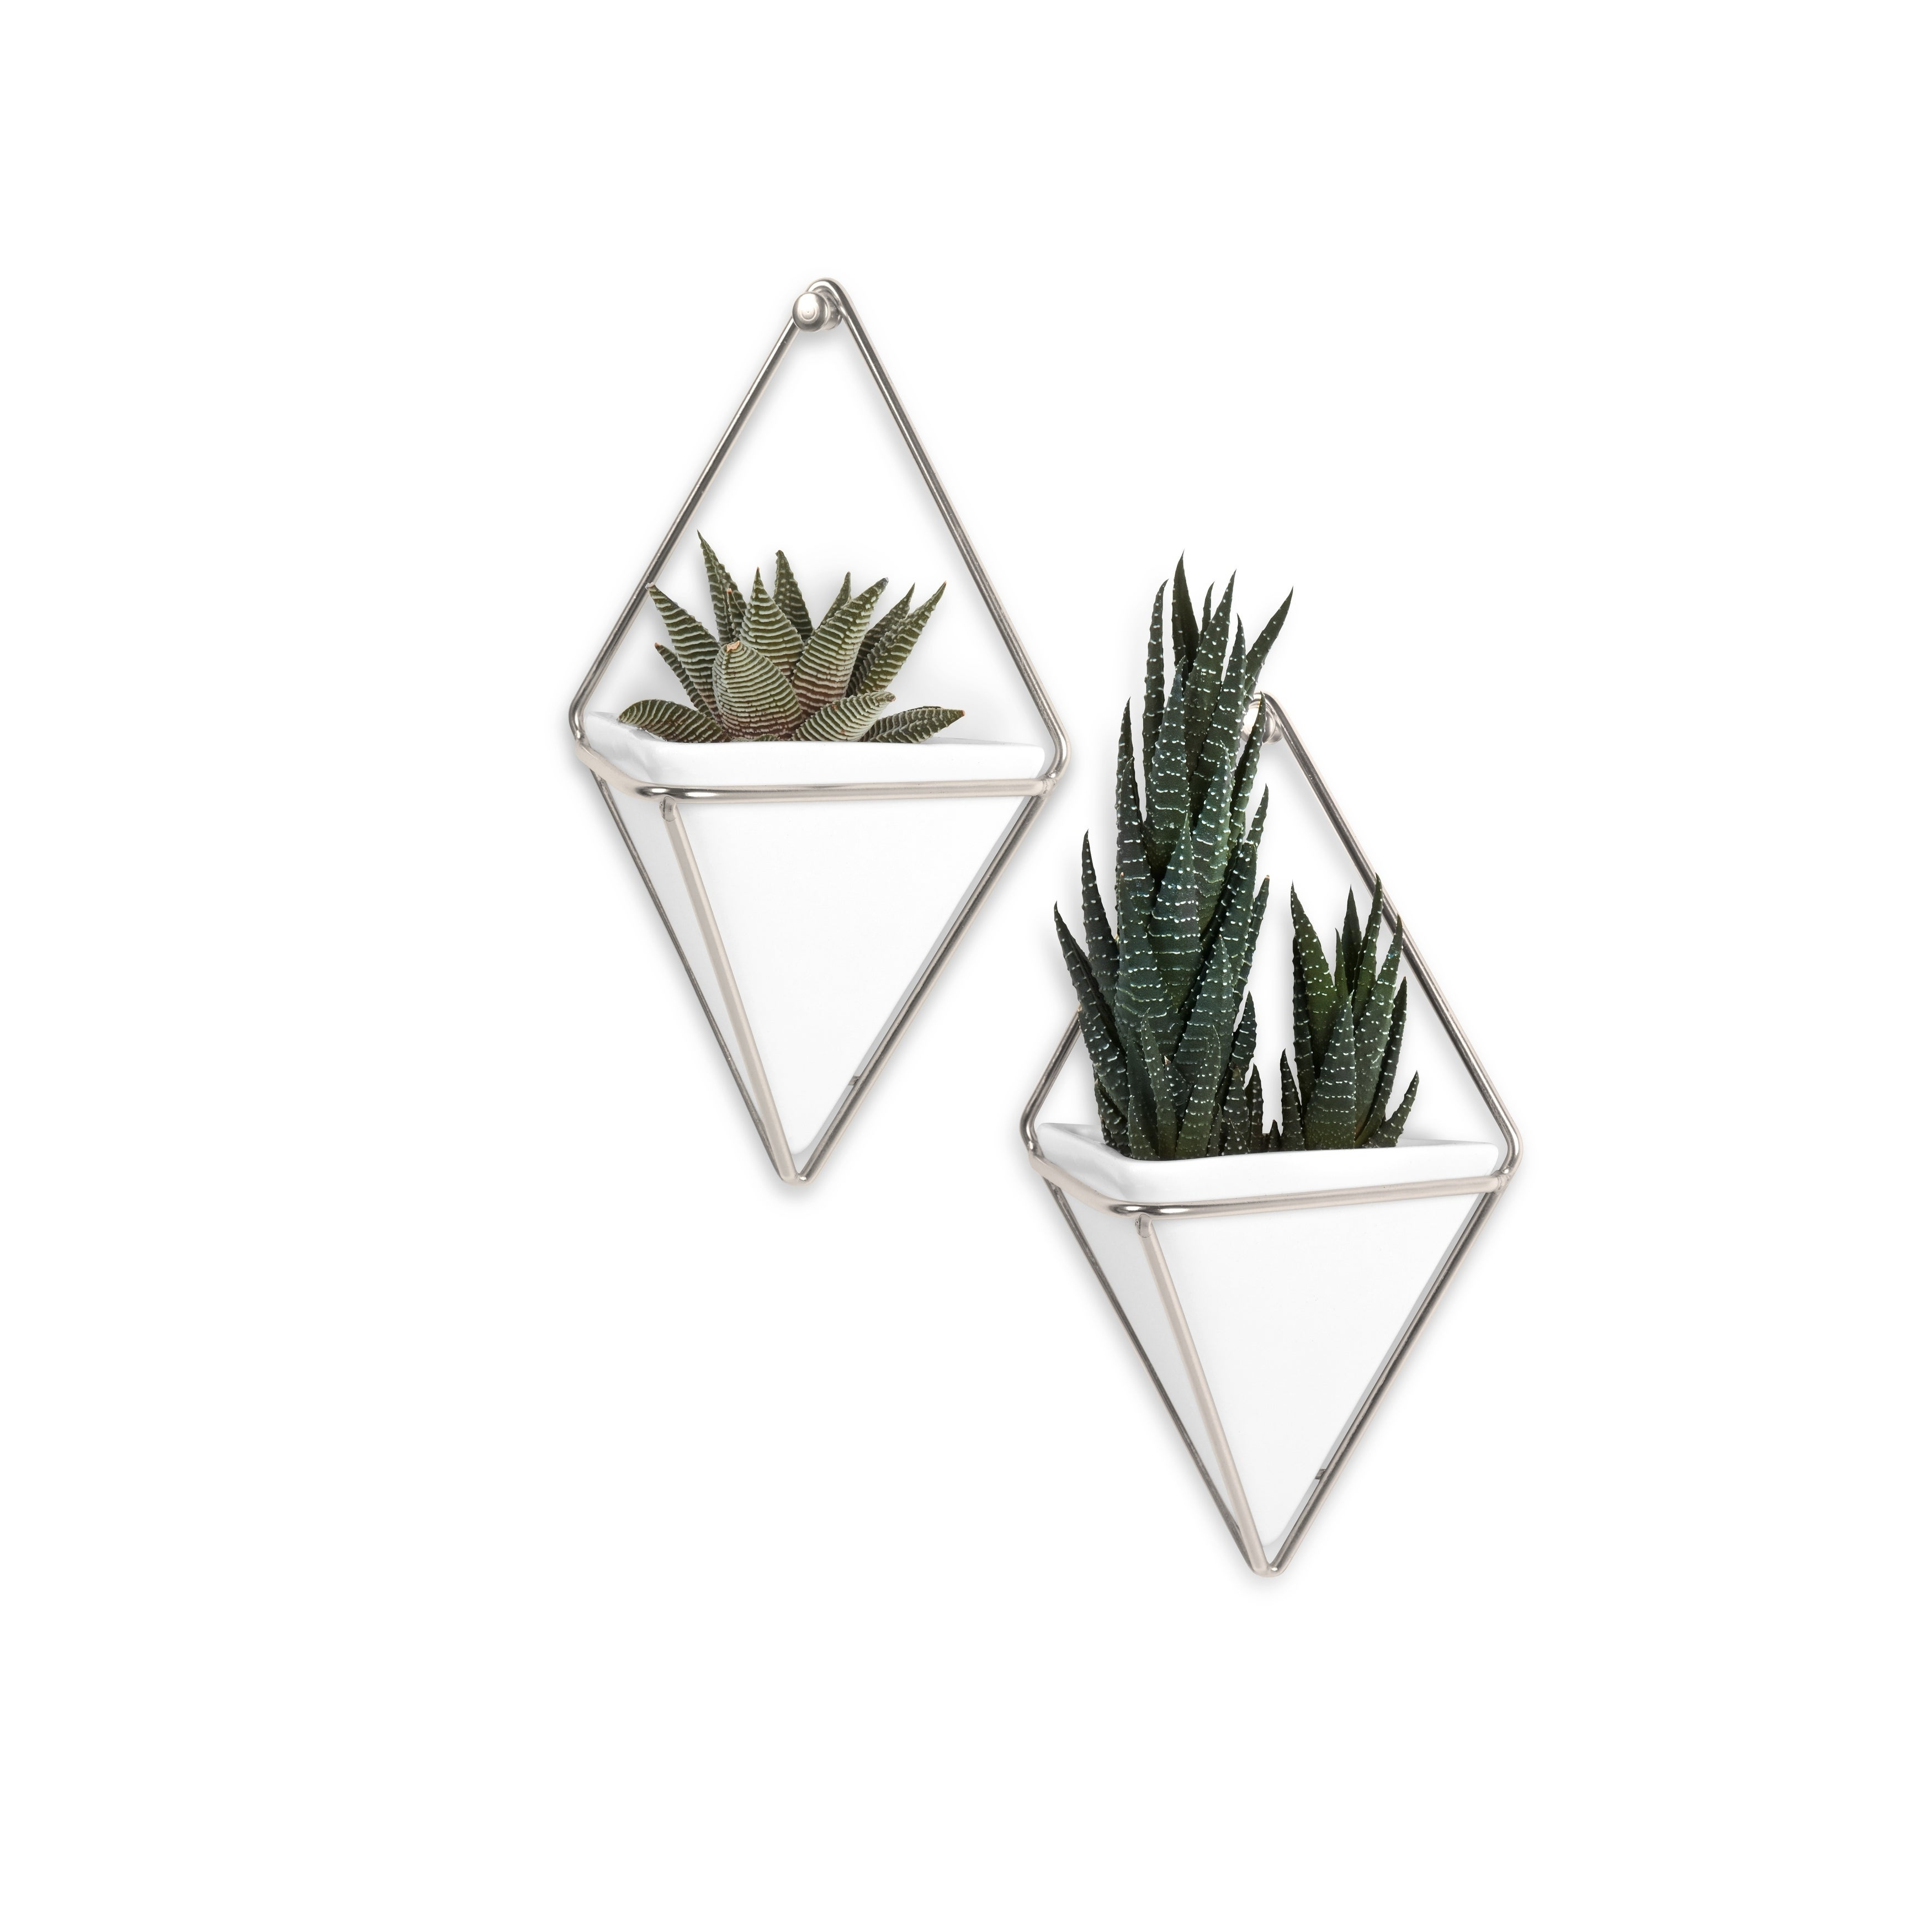 Popular Shop Umbra Trigg Hanging Planter & Wall Decor (Set Of 2) – Free Pertaining To 2 Piece Trigg Wall Decor Sets (Set Of 2) (Gallery 8 of 20)